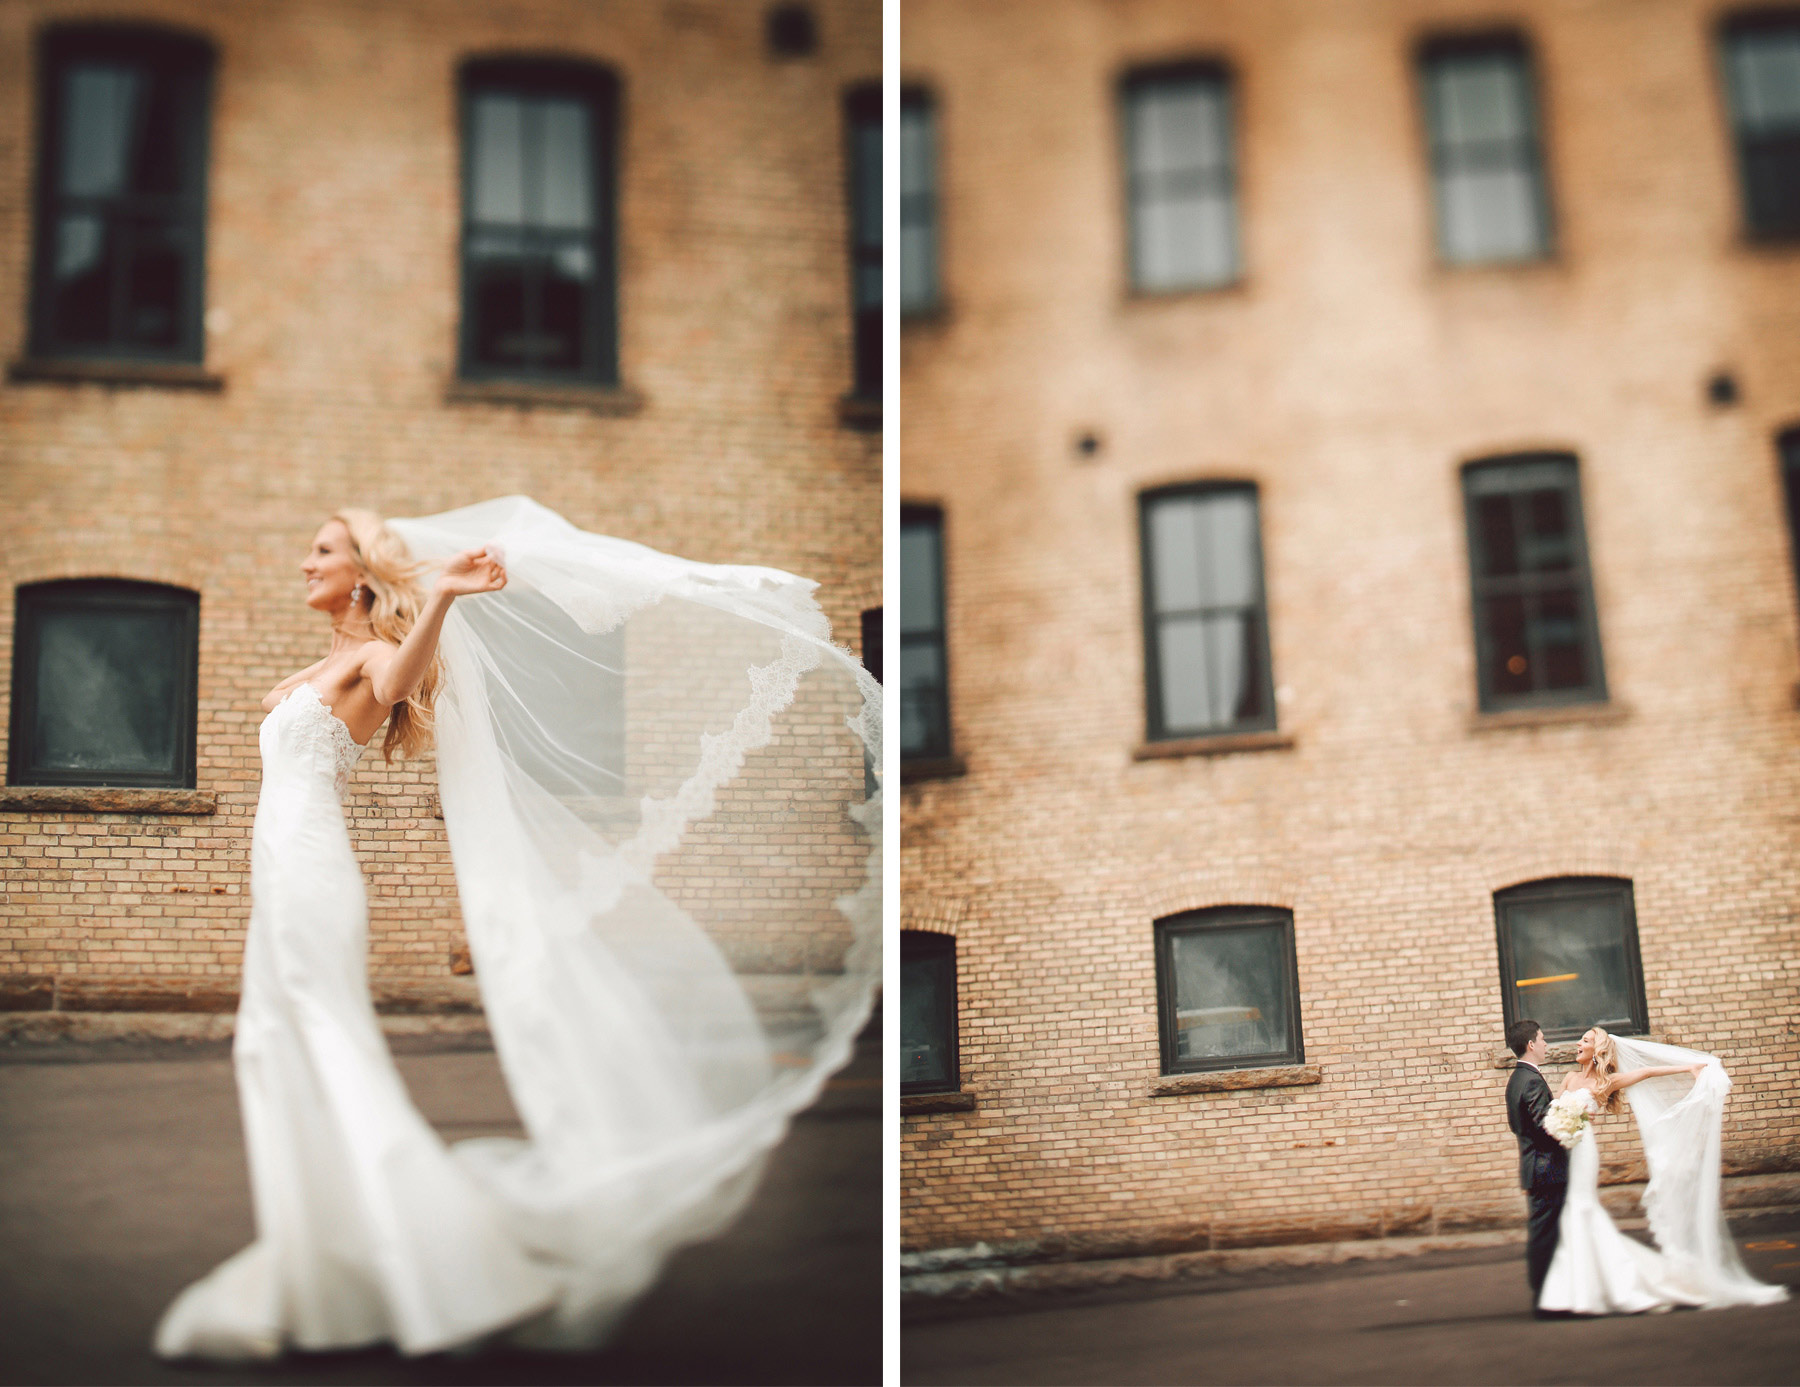 16-Saint-Paul-Minnesota-Wedding-Photographer-by-Andrew-Vick-Photography-Summer-Abulae-Bride-Groom-Dress-Veil-Vintage-Laura-and-Tim.jpg